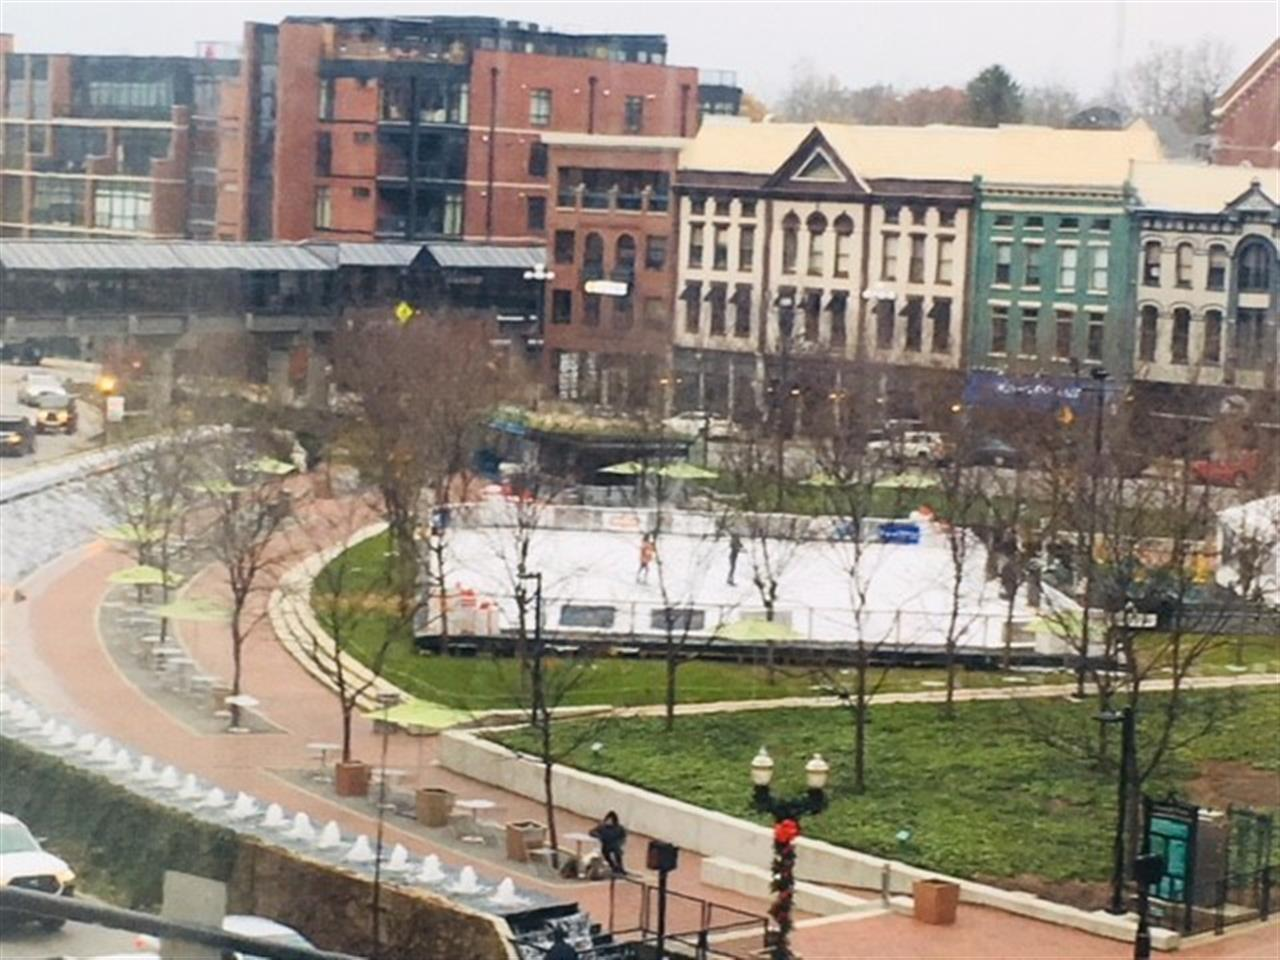 Triangle Park ice skating in Downtown Lexington, KY